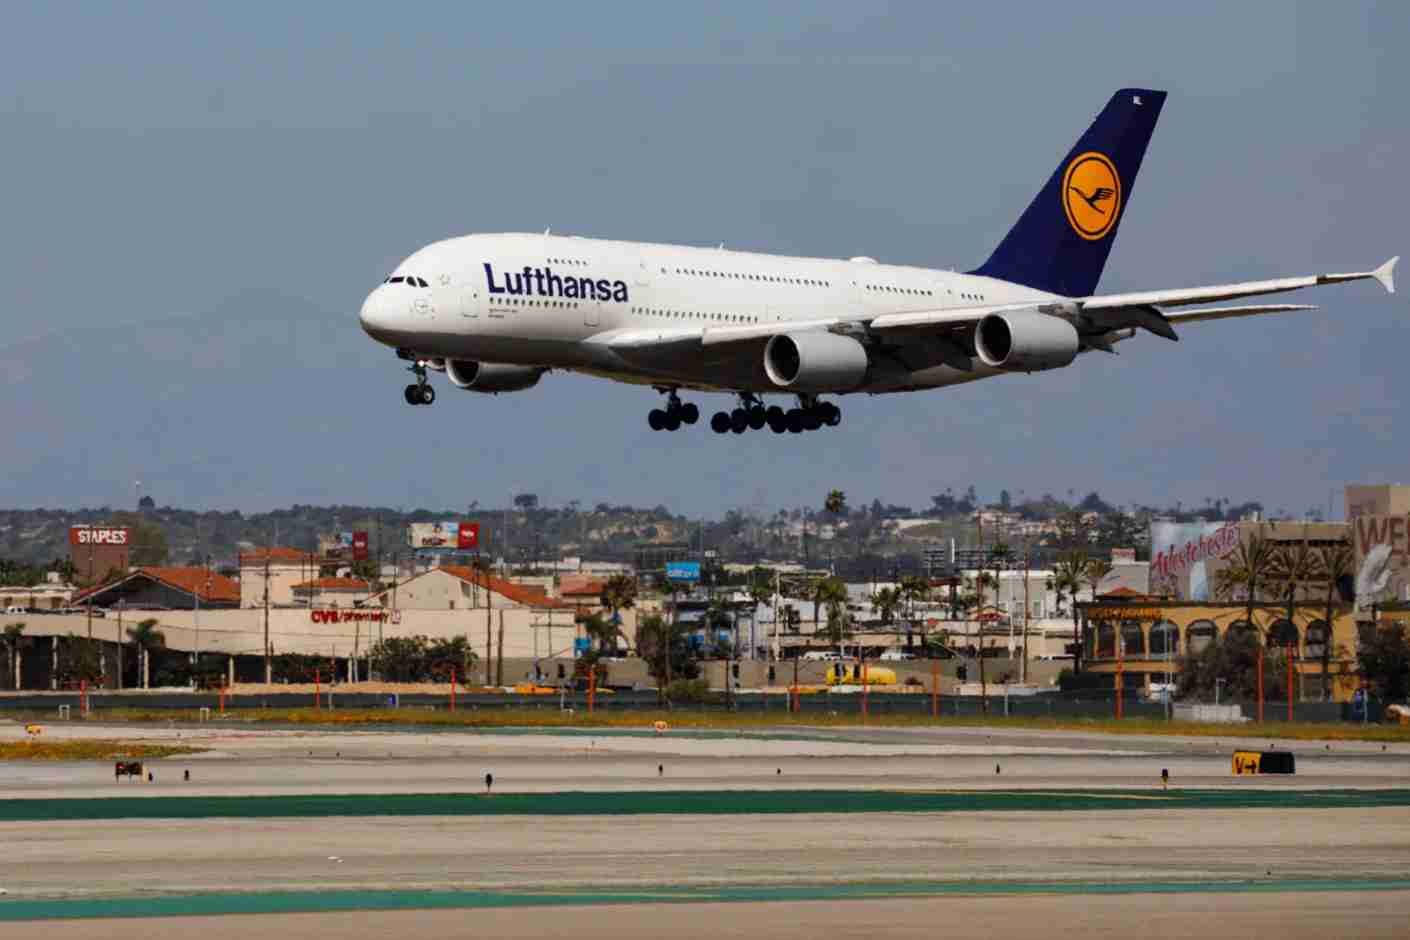 A Lufthansa Airbus SE A380 (Registration D-AIML) lands at Los Angeles International Airport (LAX) on Friday, March 29, 2019 in Los Angeles, Calif. © 2019 Patrick T. Fallon for The Points Guy